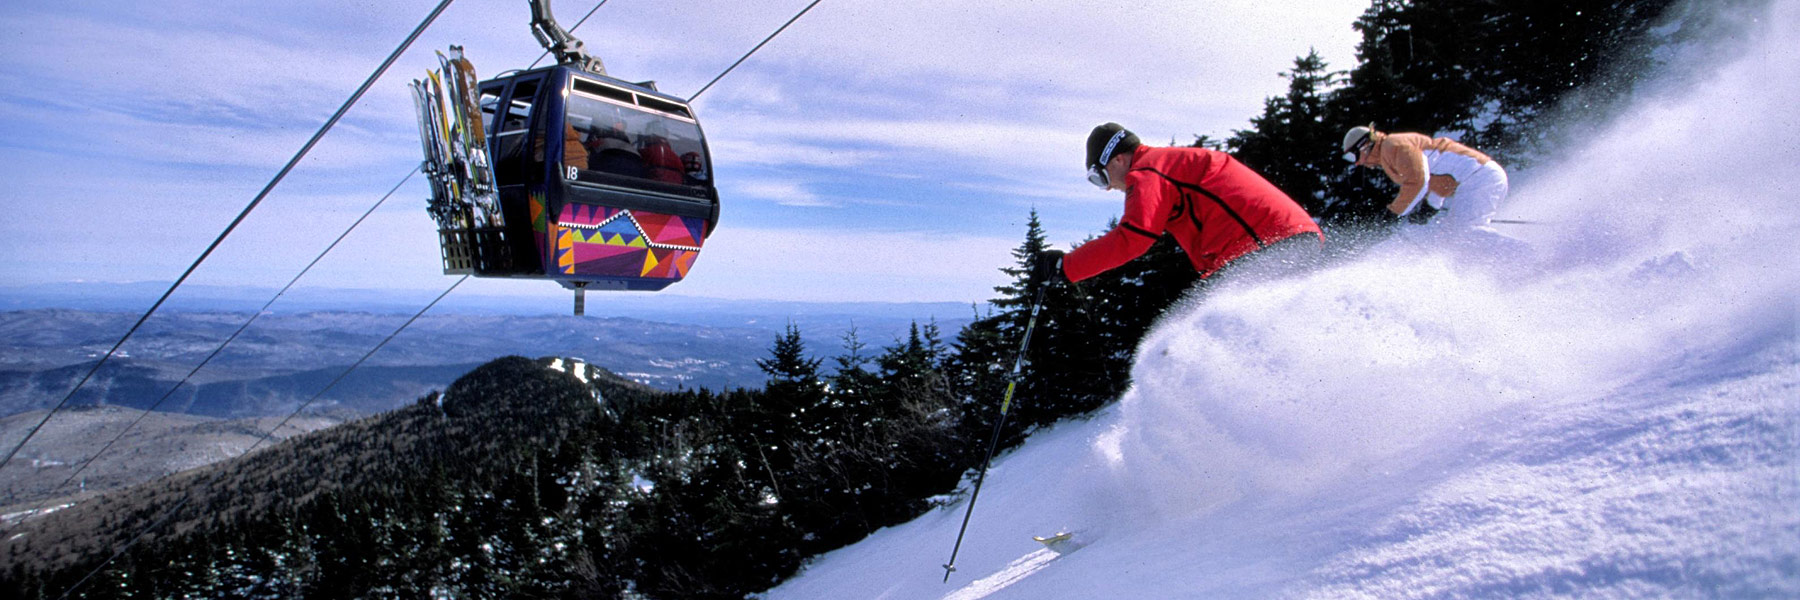 Killington, Vermont: 'Magnificent March Midweeks' 5 Night Special at Mountain Green from $63 per person/per night!